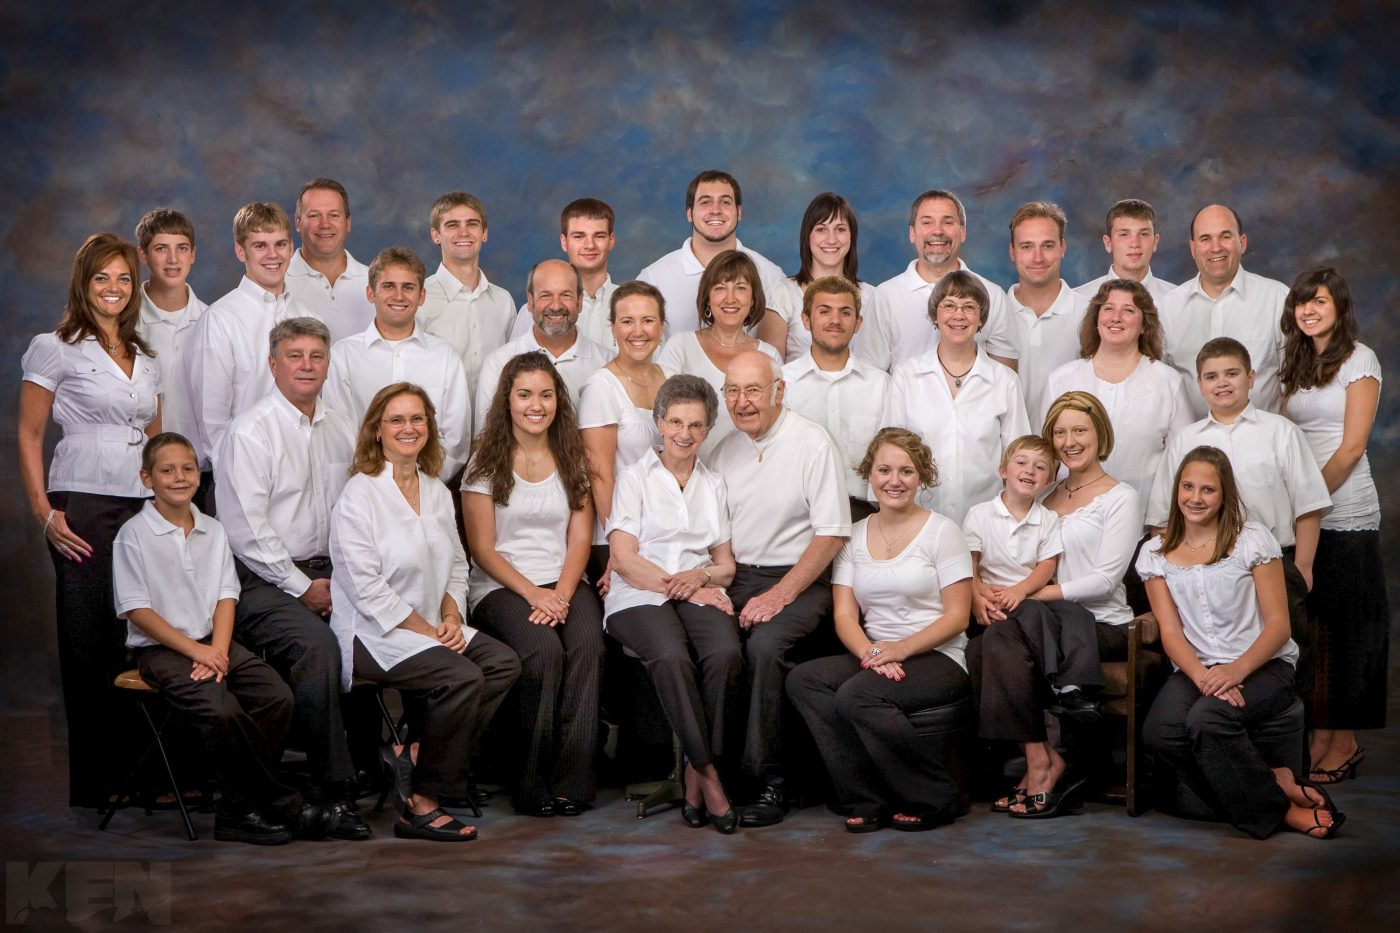 A family of 3 generations and over 30 people poses comfortably wearing white shirts.